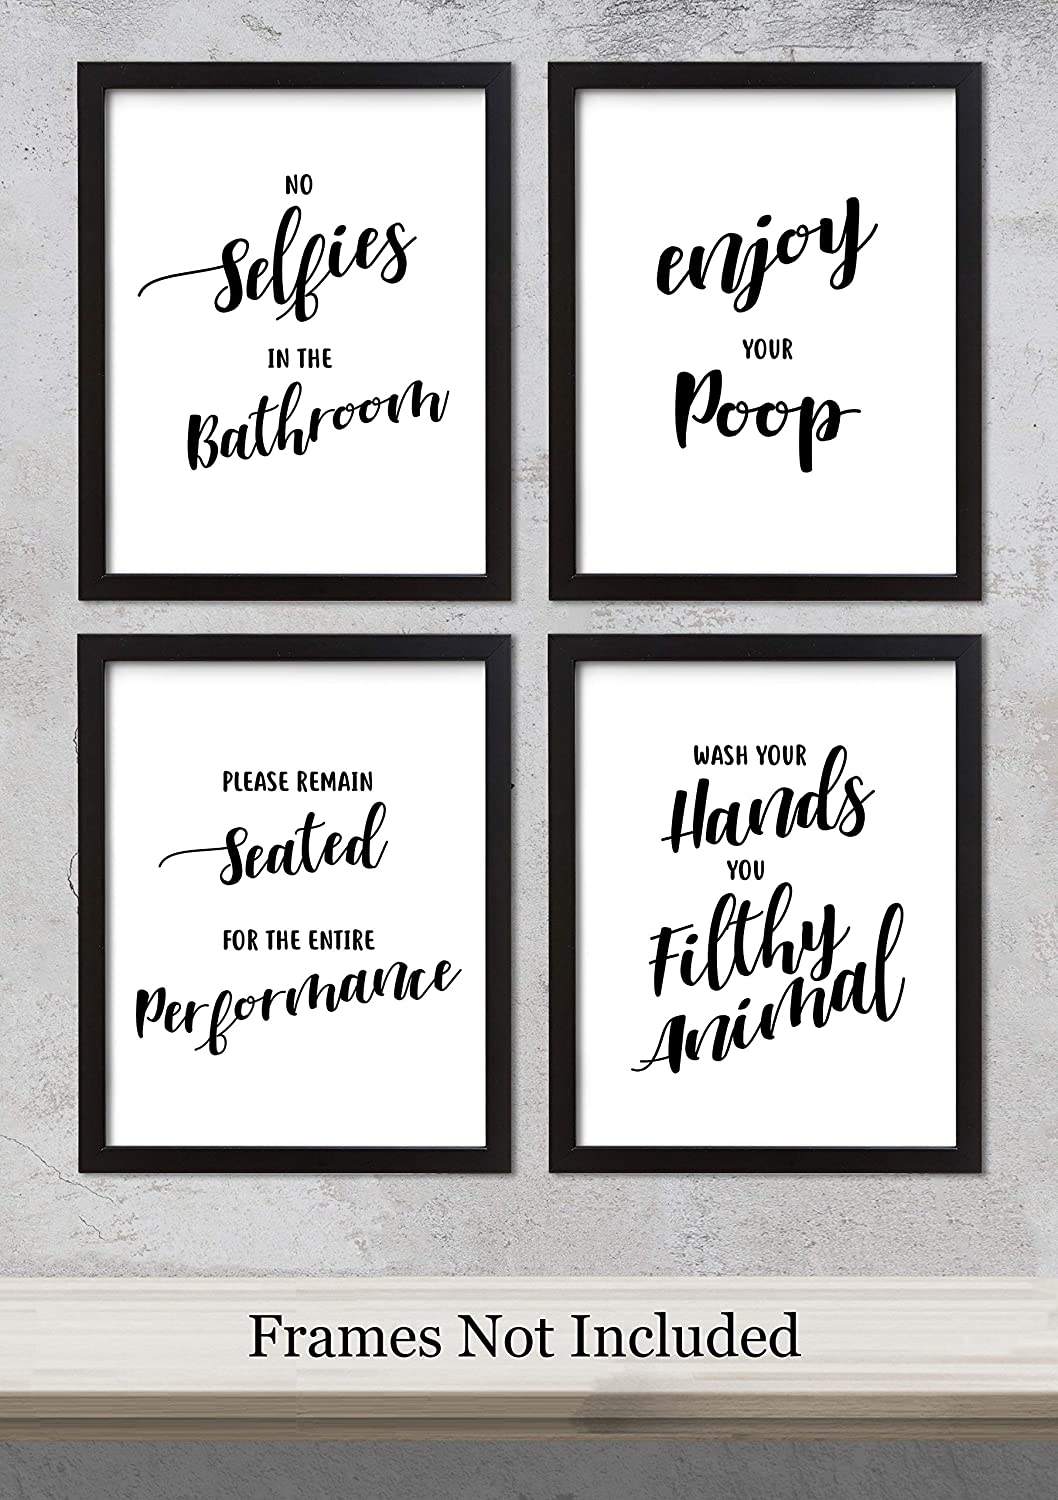 Quotes For Selfies | Bathroom Quotes Sayings No Selfies Art Prints Set Of Four Unframed Photos 8x10 Great Bathroom Decor Gift Idea